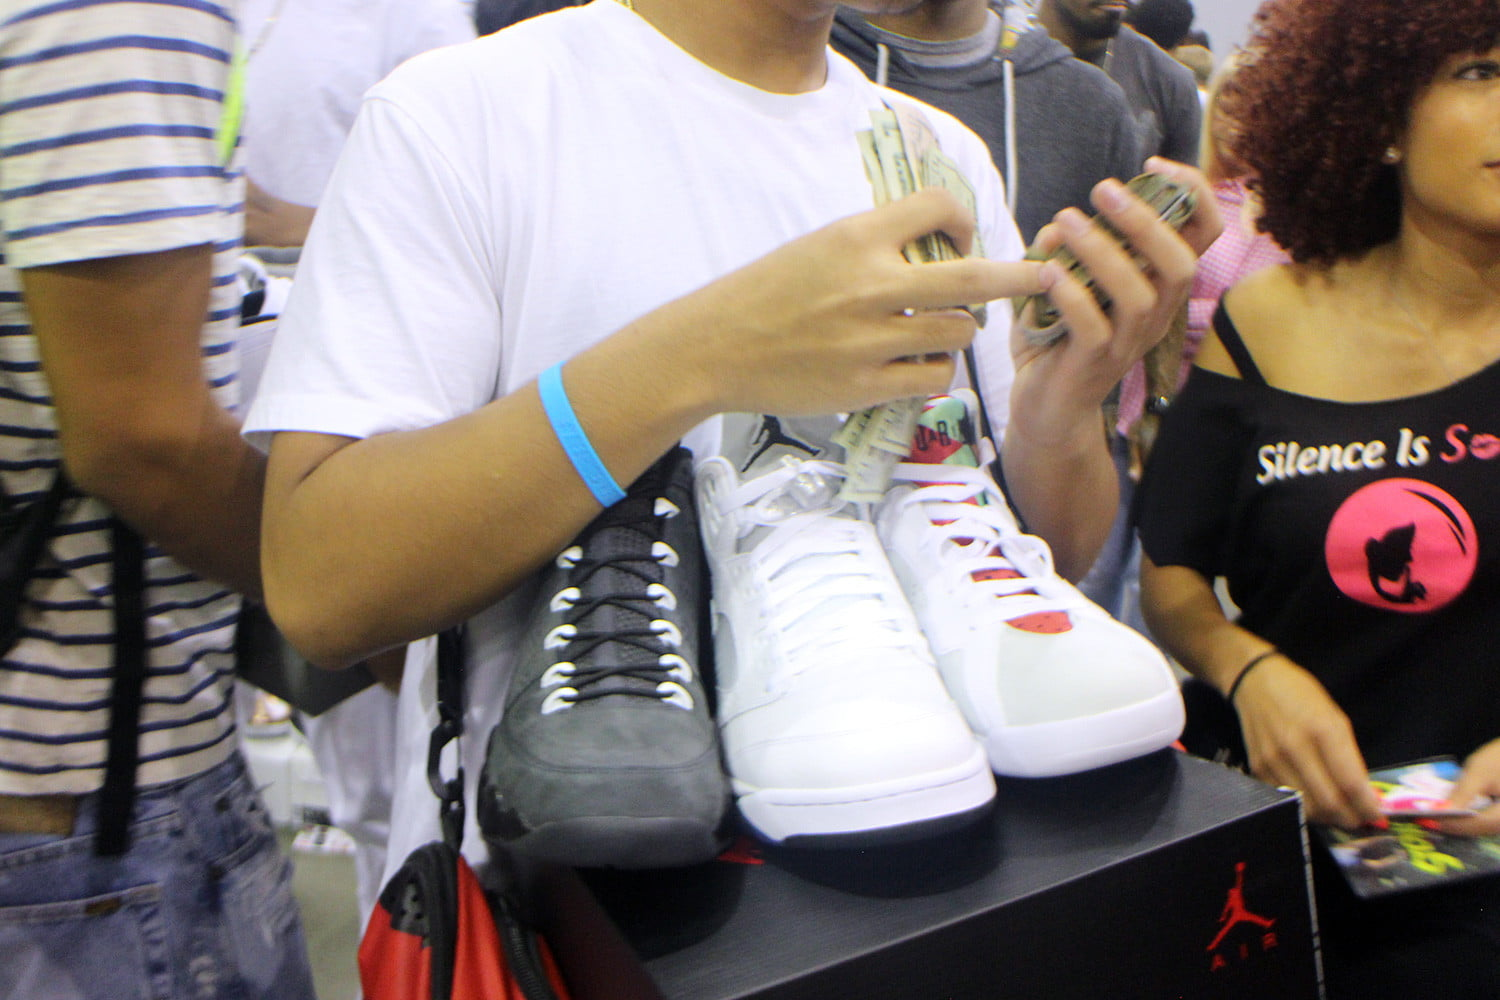 bc7cab0fbfc sneakercon sneaker culture matures making money from sneakers